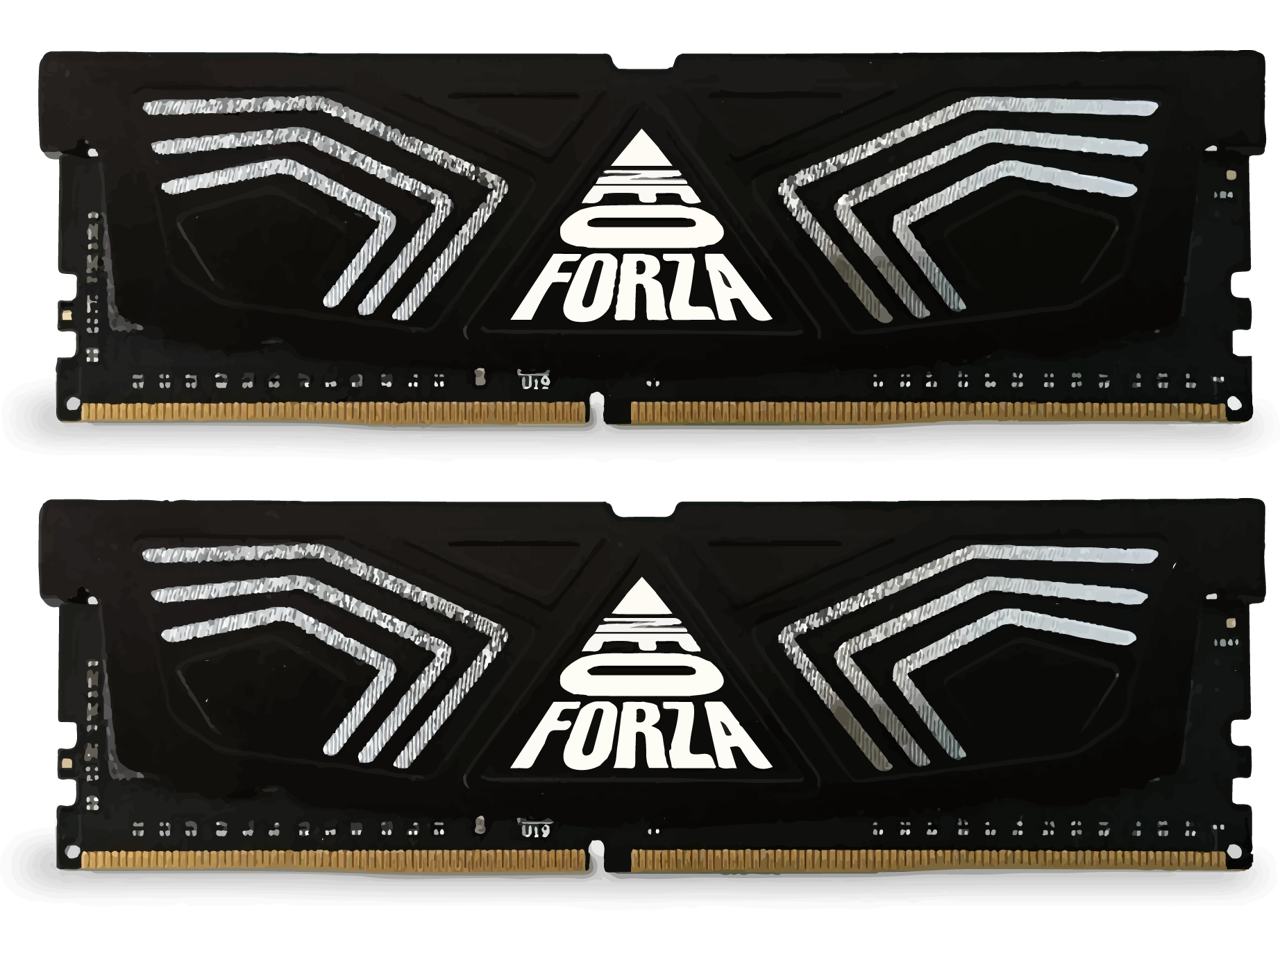 Neo Forza FAYE 16GB (2x8GB) 288-Pin DDR4 3600 18-19-19-39 RAM for $54.99 w/ FS after Code at NewEgg.com